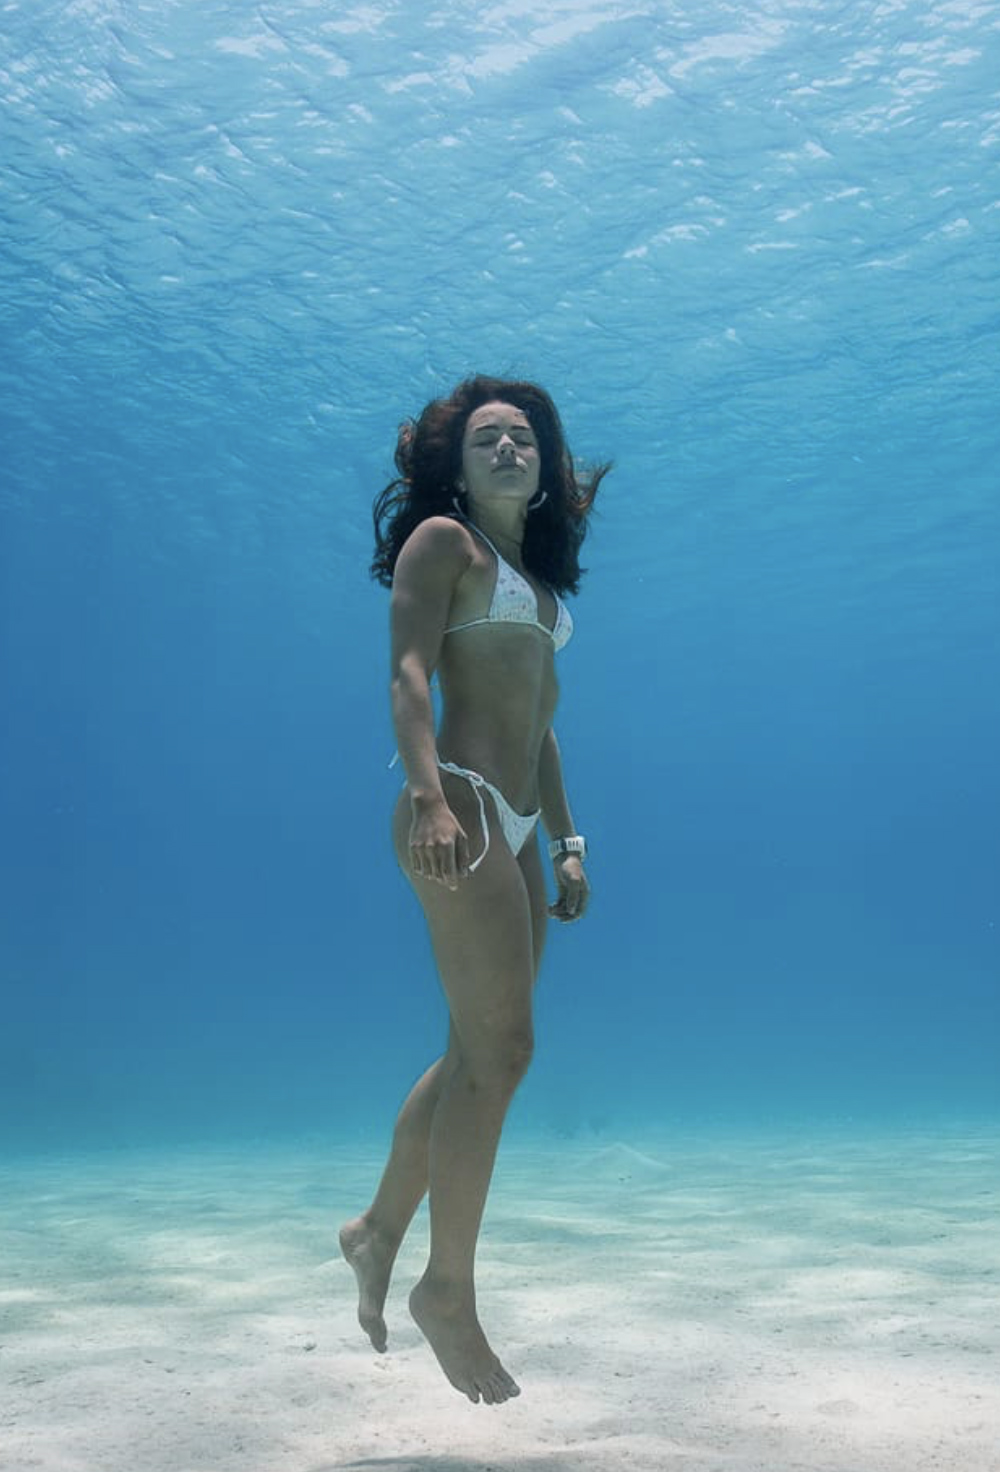 Three x World Record holder Sofía Gómez Uribe, taken by fellow freediver and coach,  Johnny Sunnex